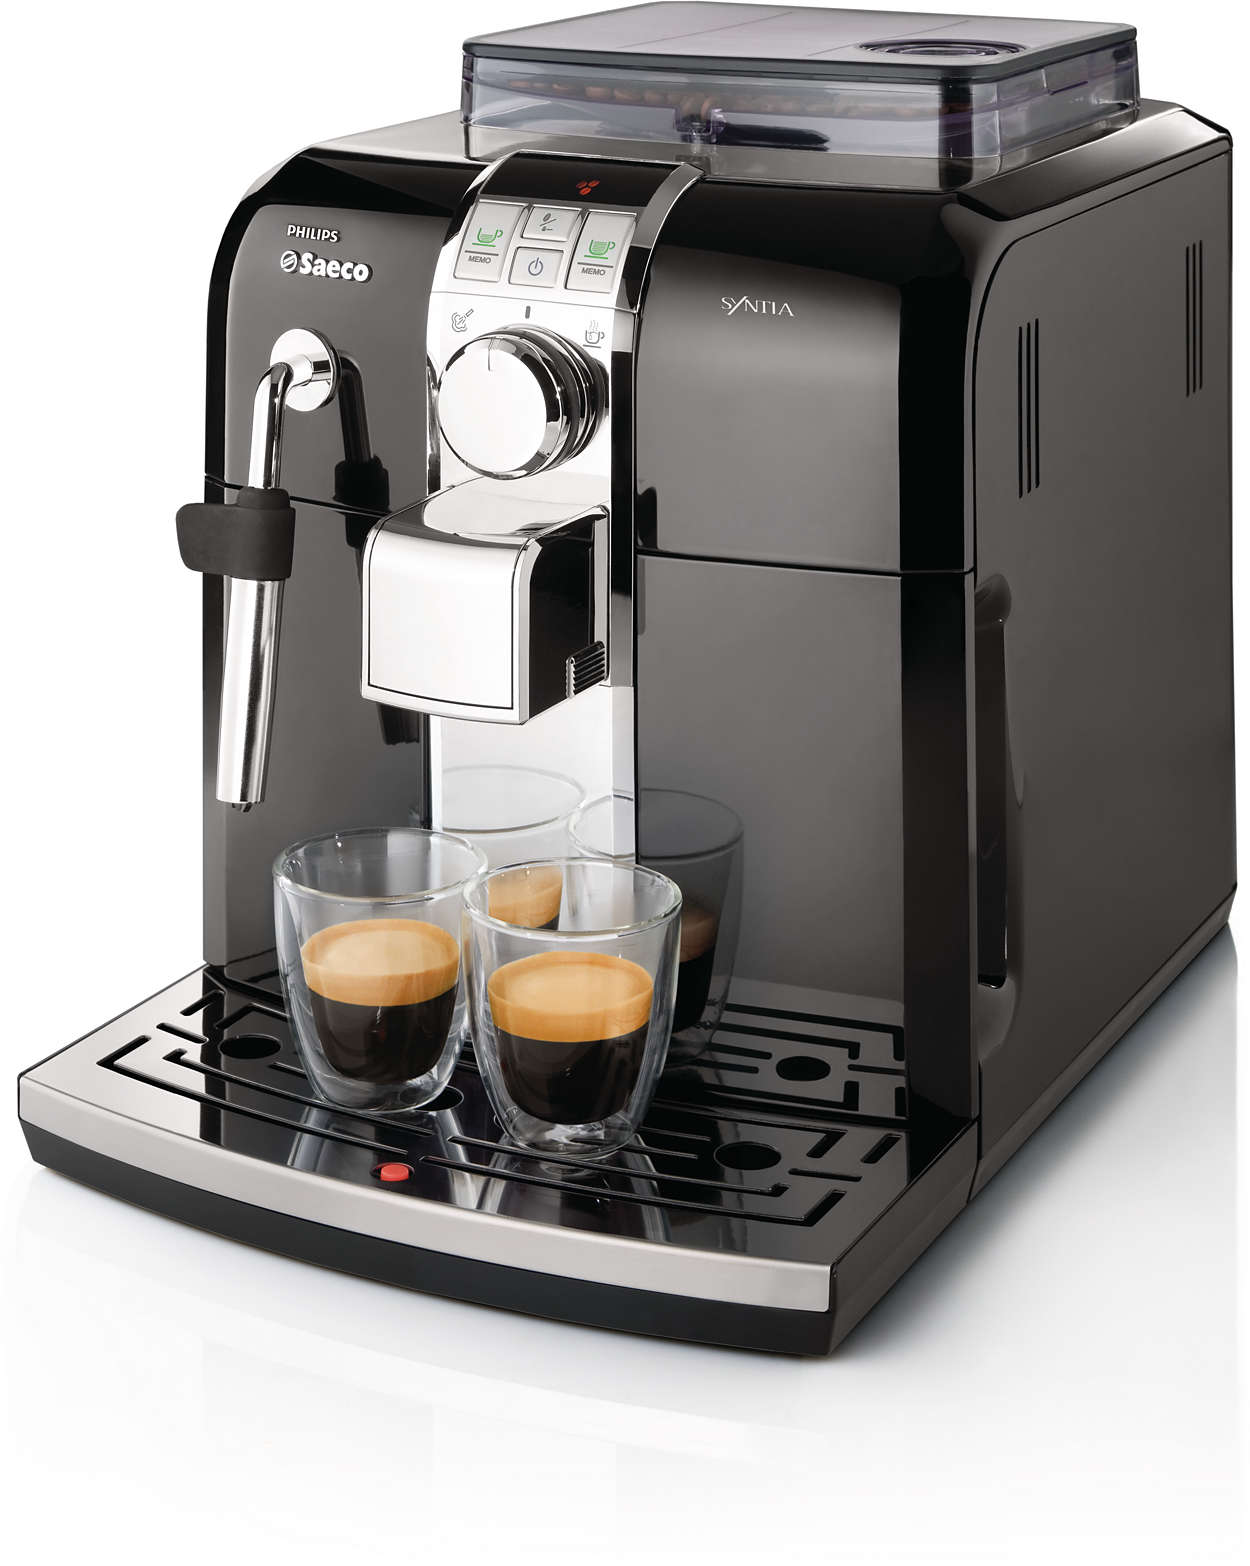 Italian Automatic Coffee Maker : Syntia Super-automatic espresso machine HD8833/47 Saeco